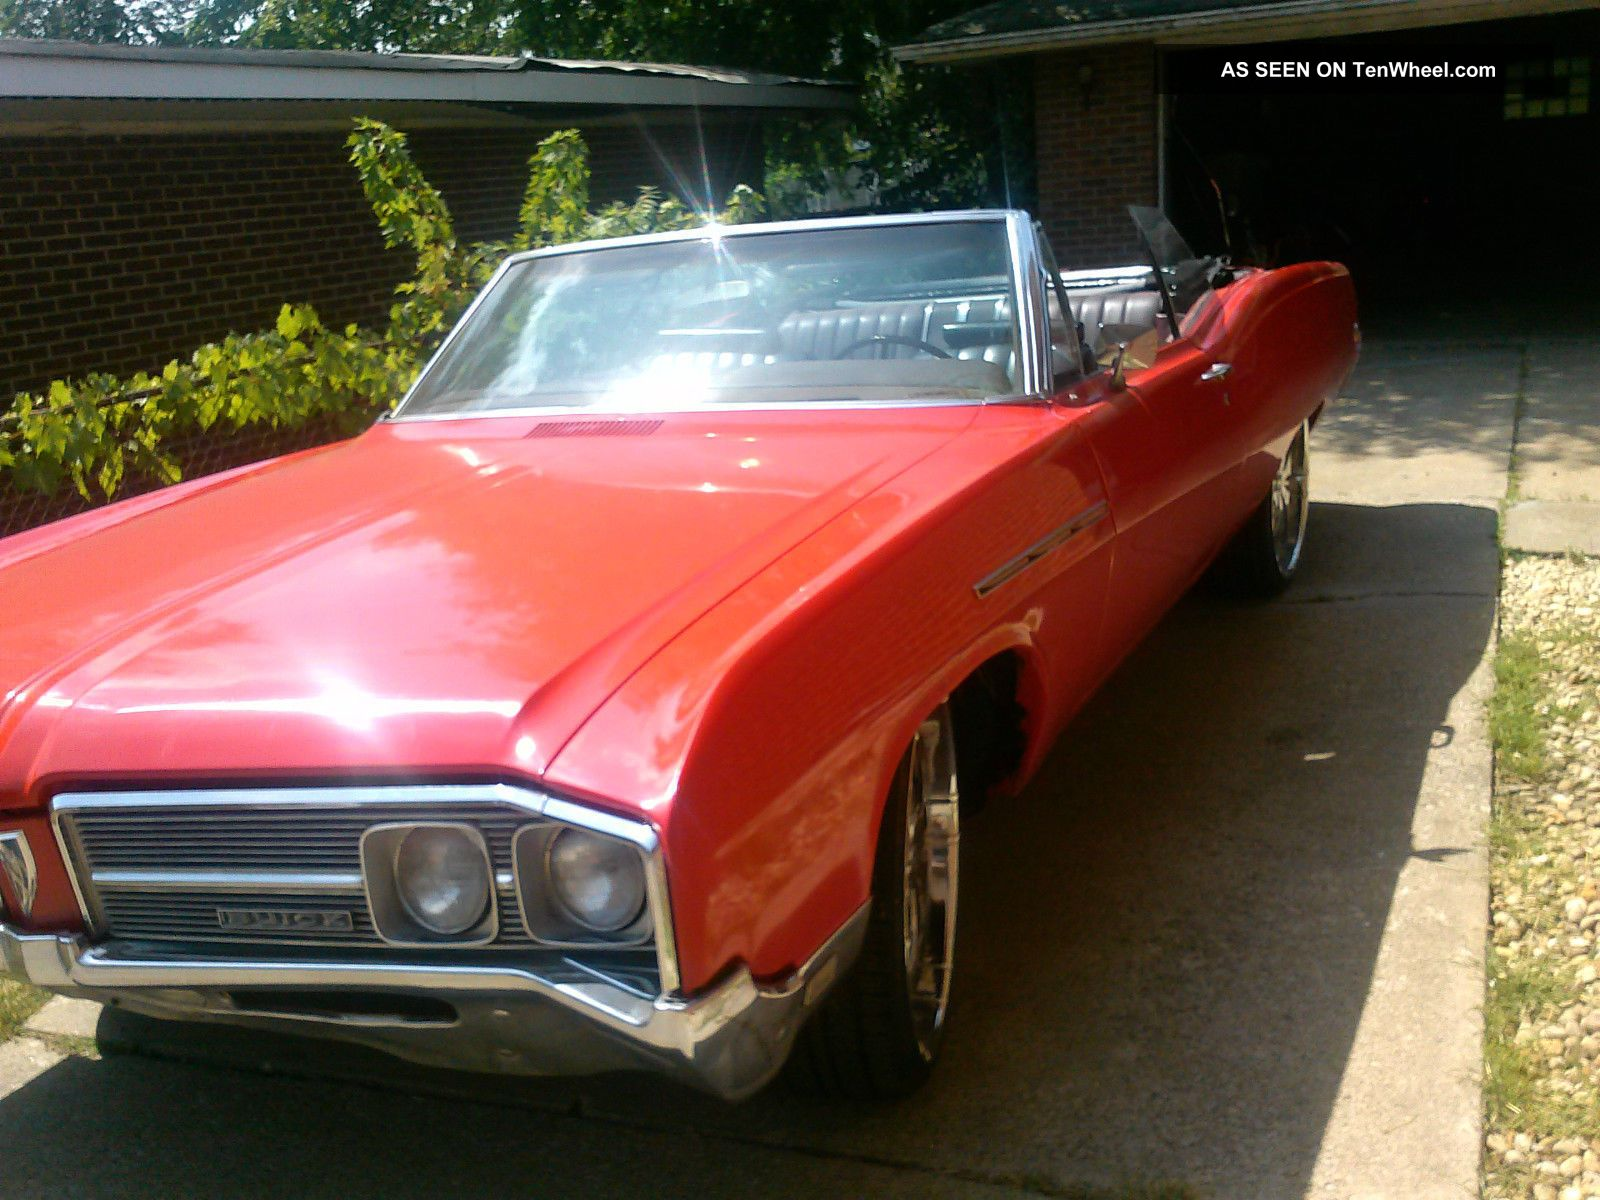 1968 Buick Lesabre Convertible With Custom Wheels LeSabre photo